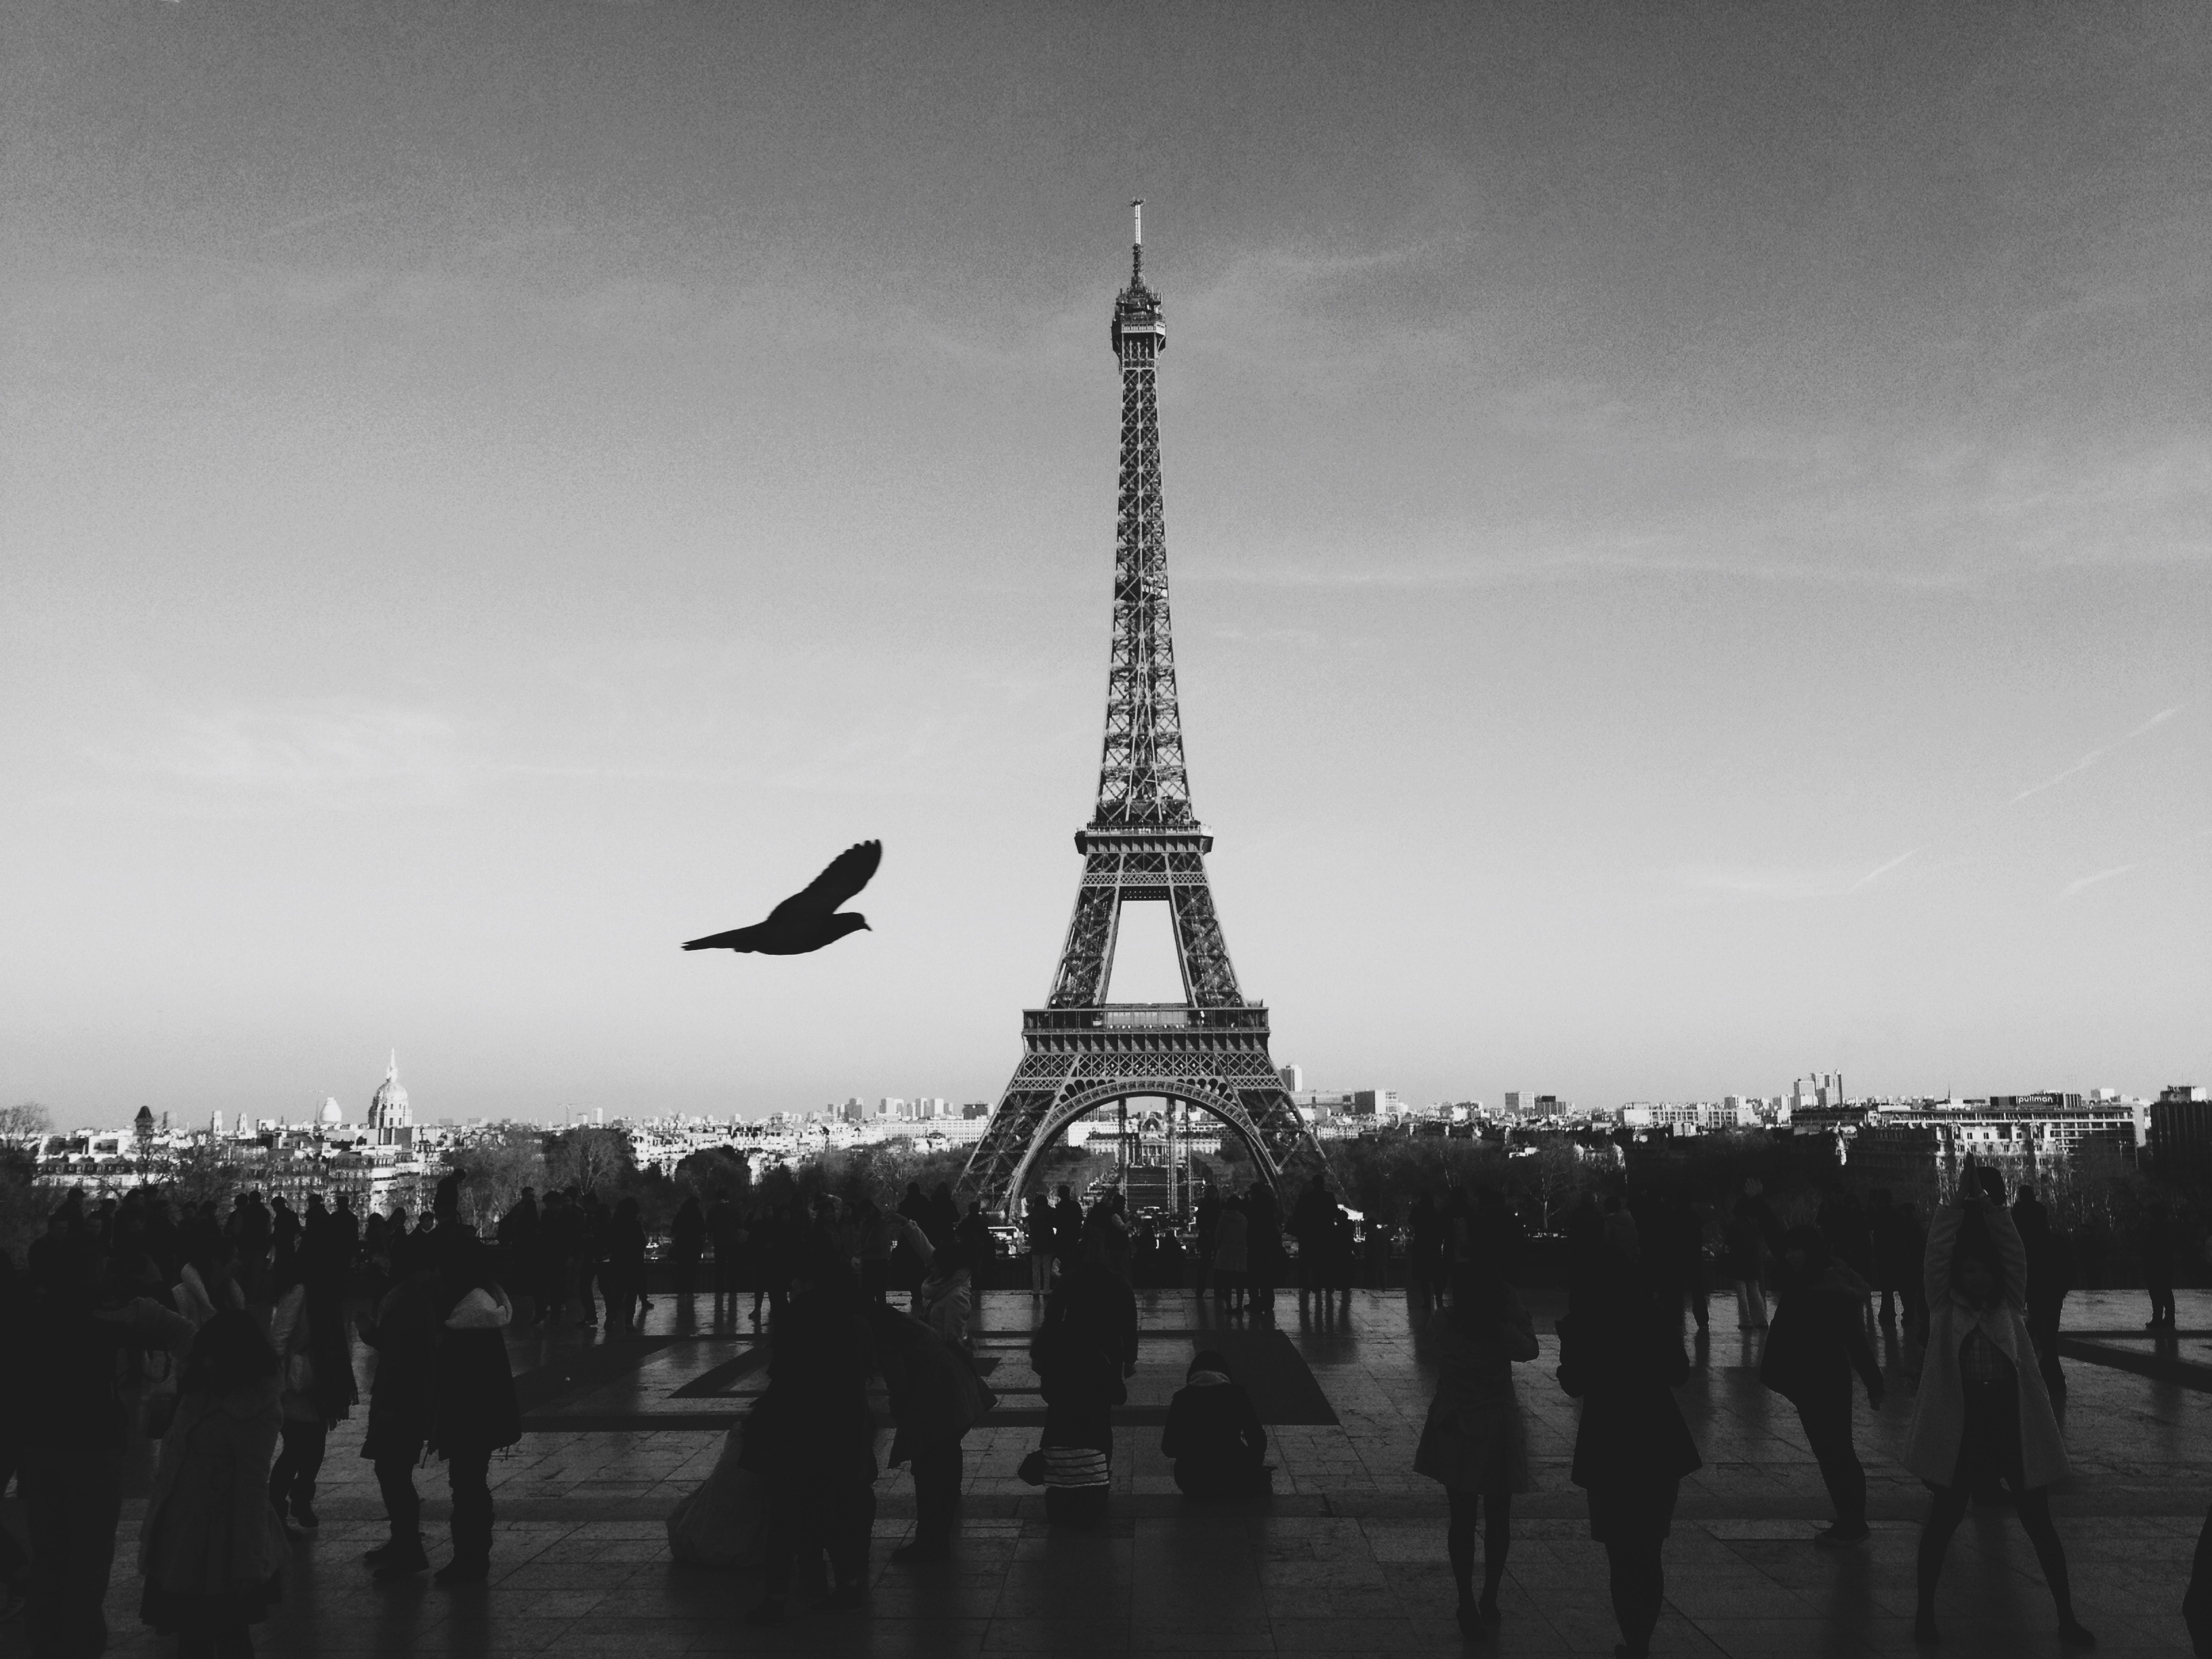 Eiffel Tower, Paris, people, iron, black and white, tower, Eiffel, dove